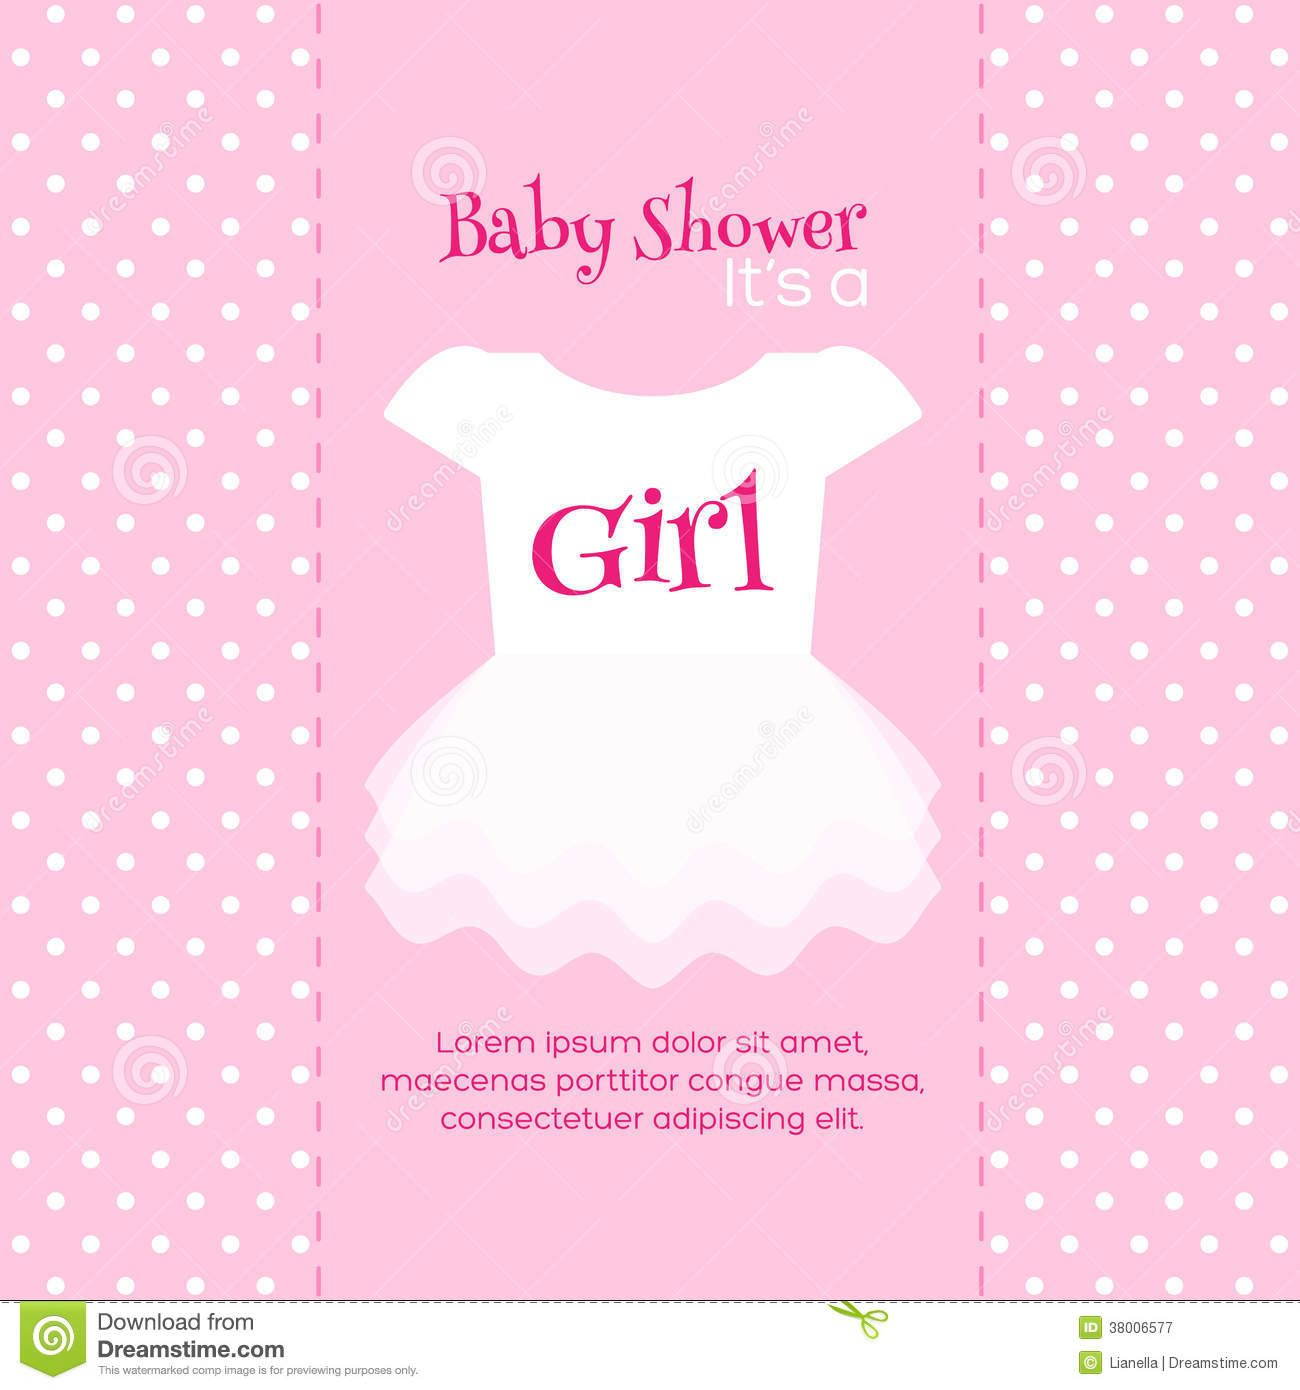 Design : Free Printable Baby Shower Invitations for Girls | Ckylares Babyshower | Pinterest ...